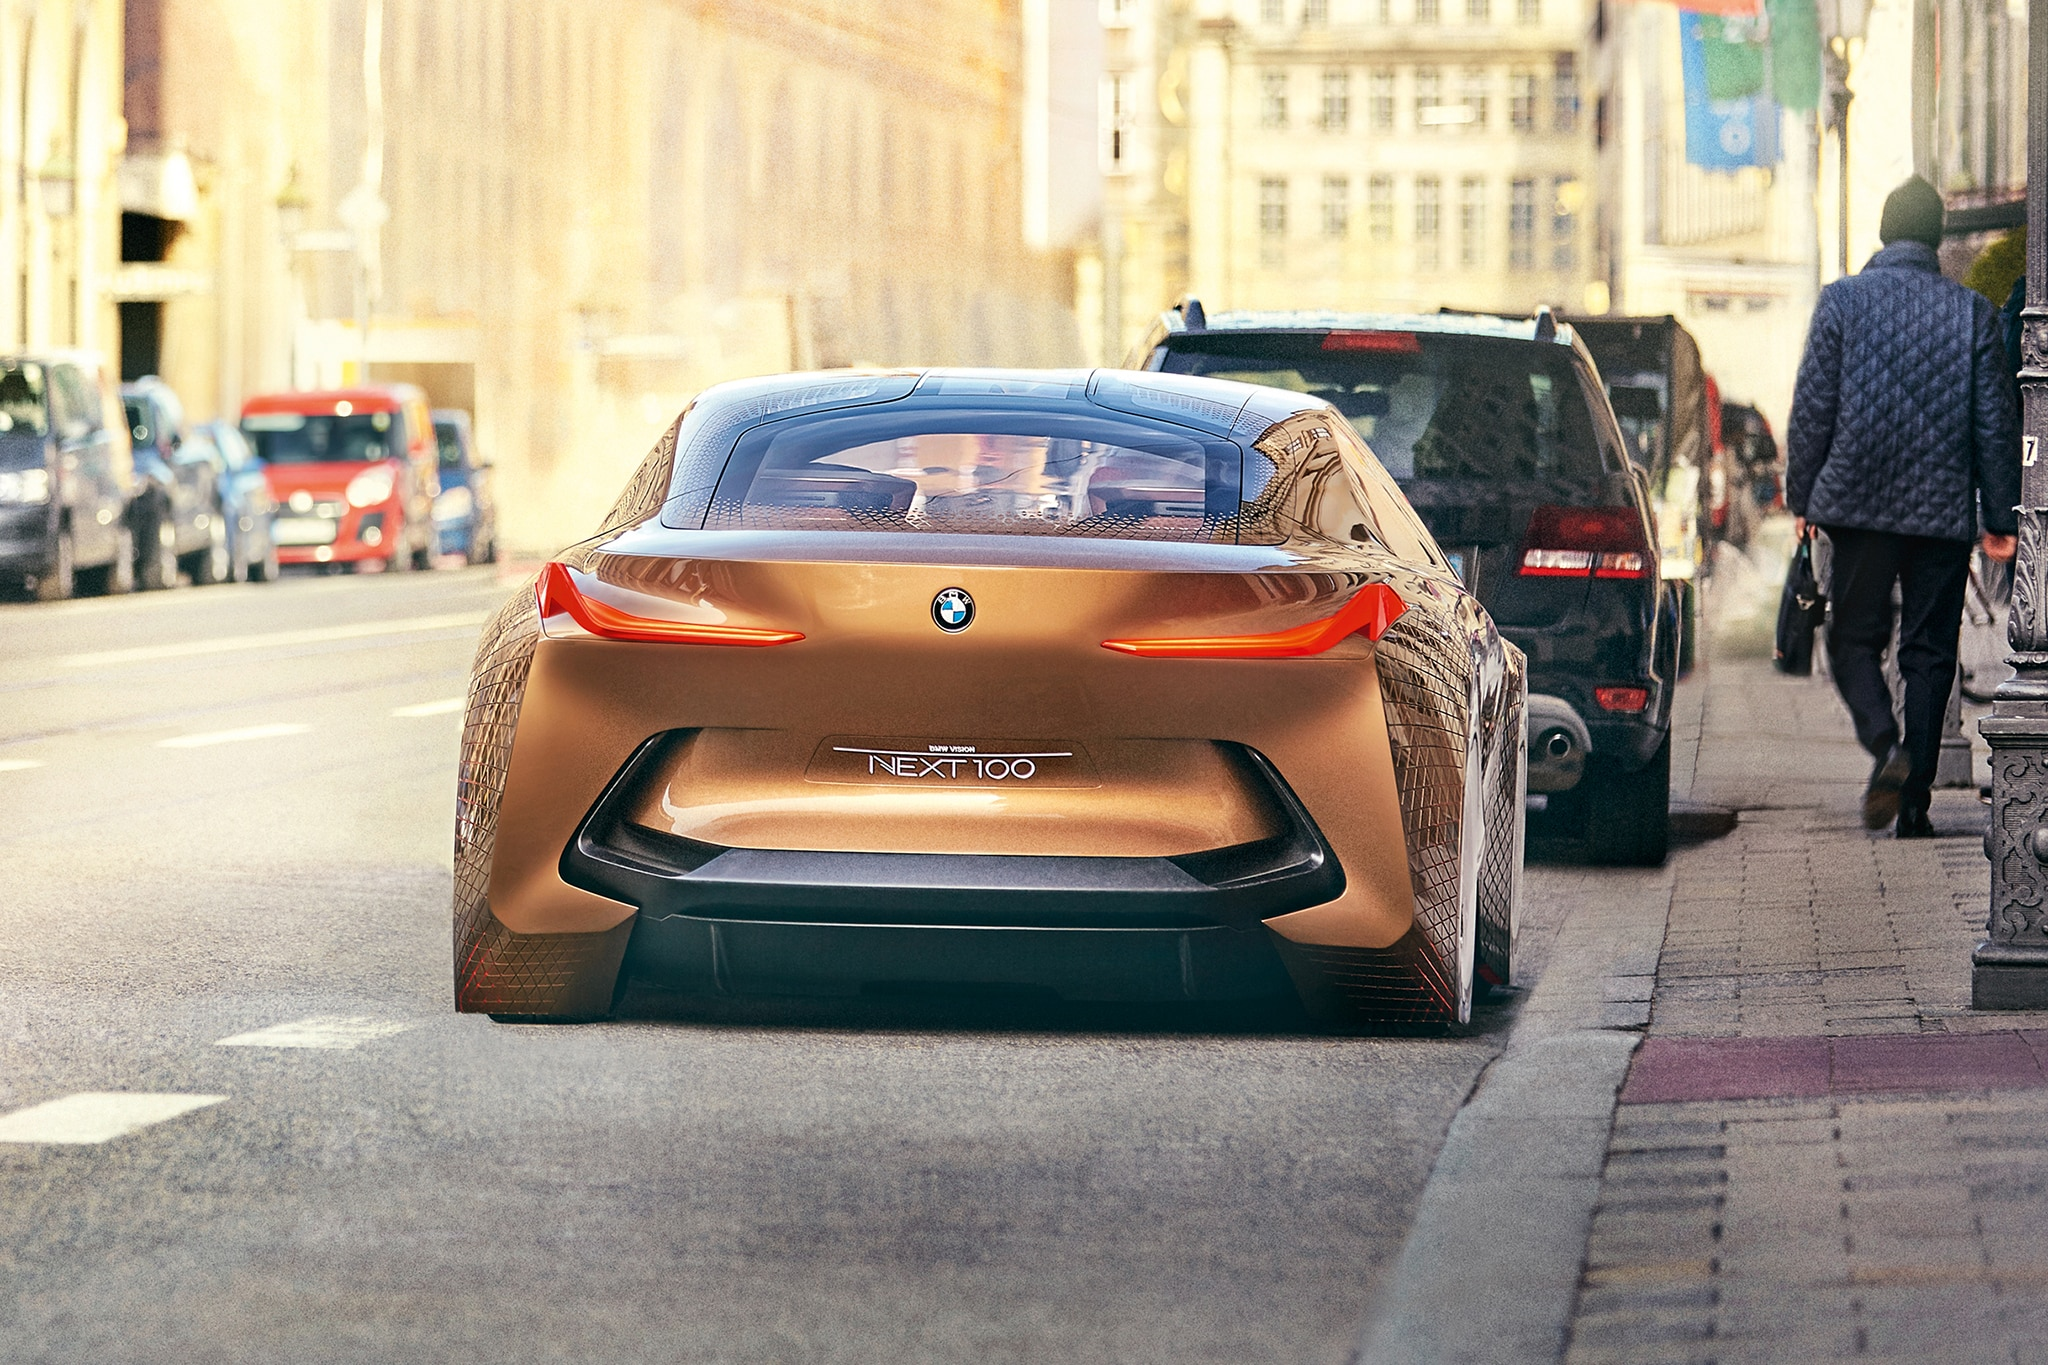 BMW-Vision-Next-100-rear-end-01